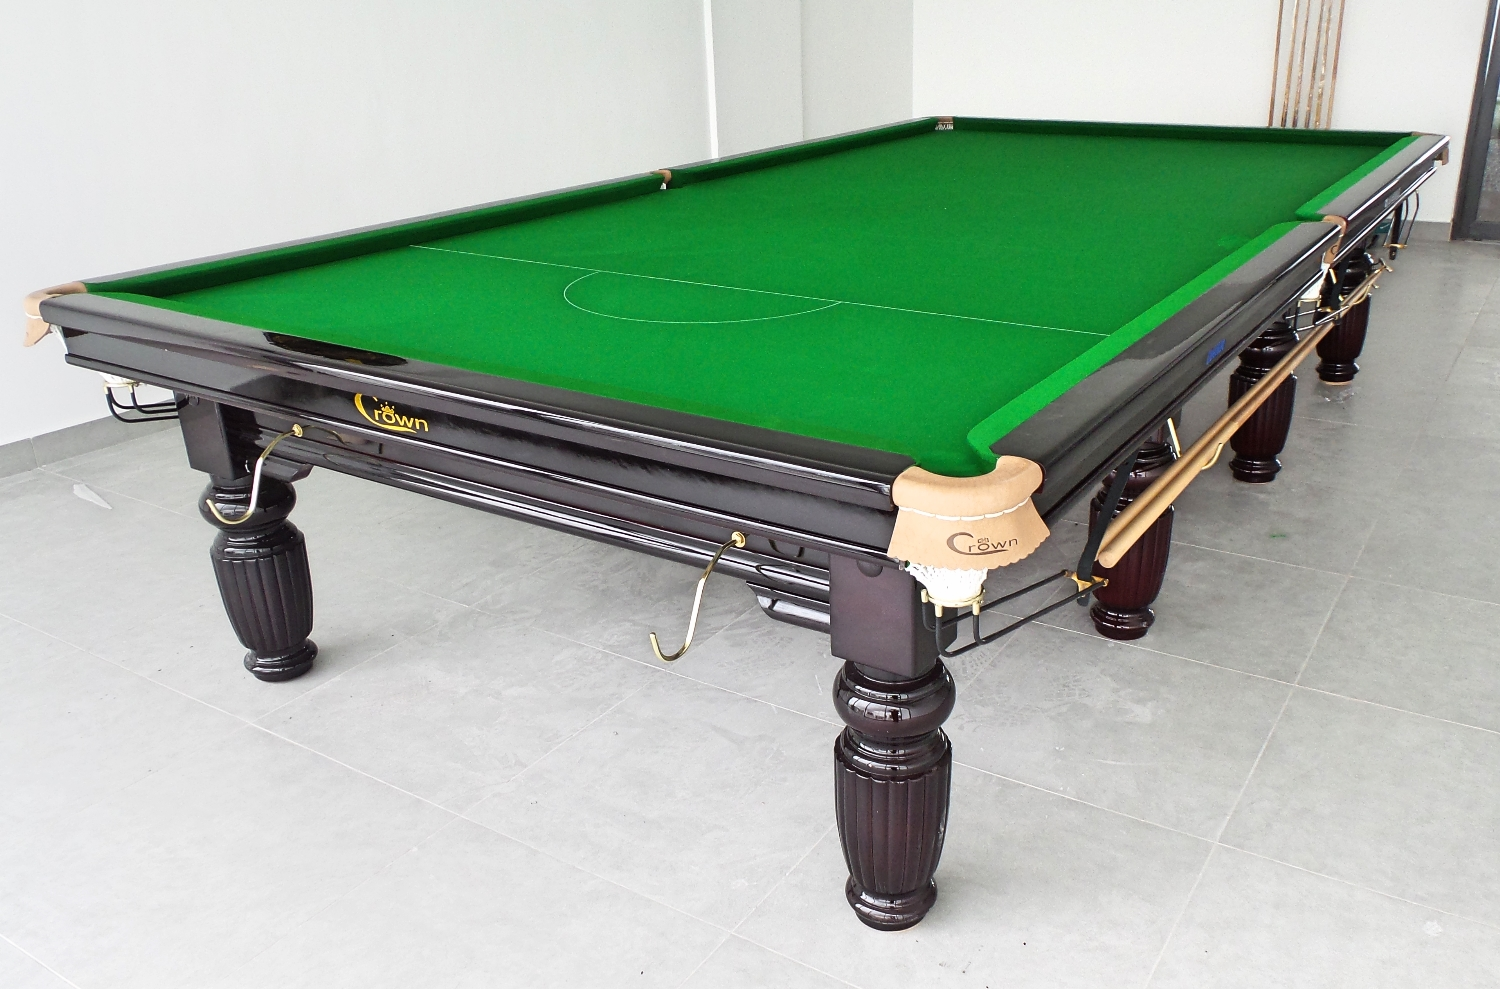 The Big Daddy Of Billiards The Crown 12ft Snooker Table